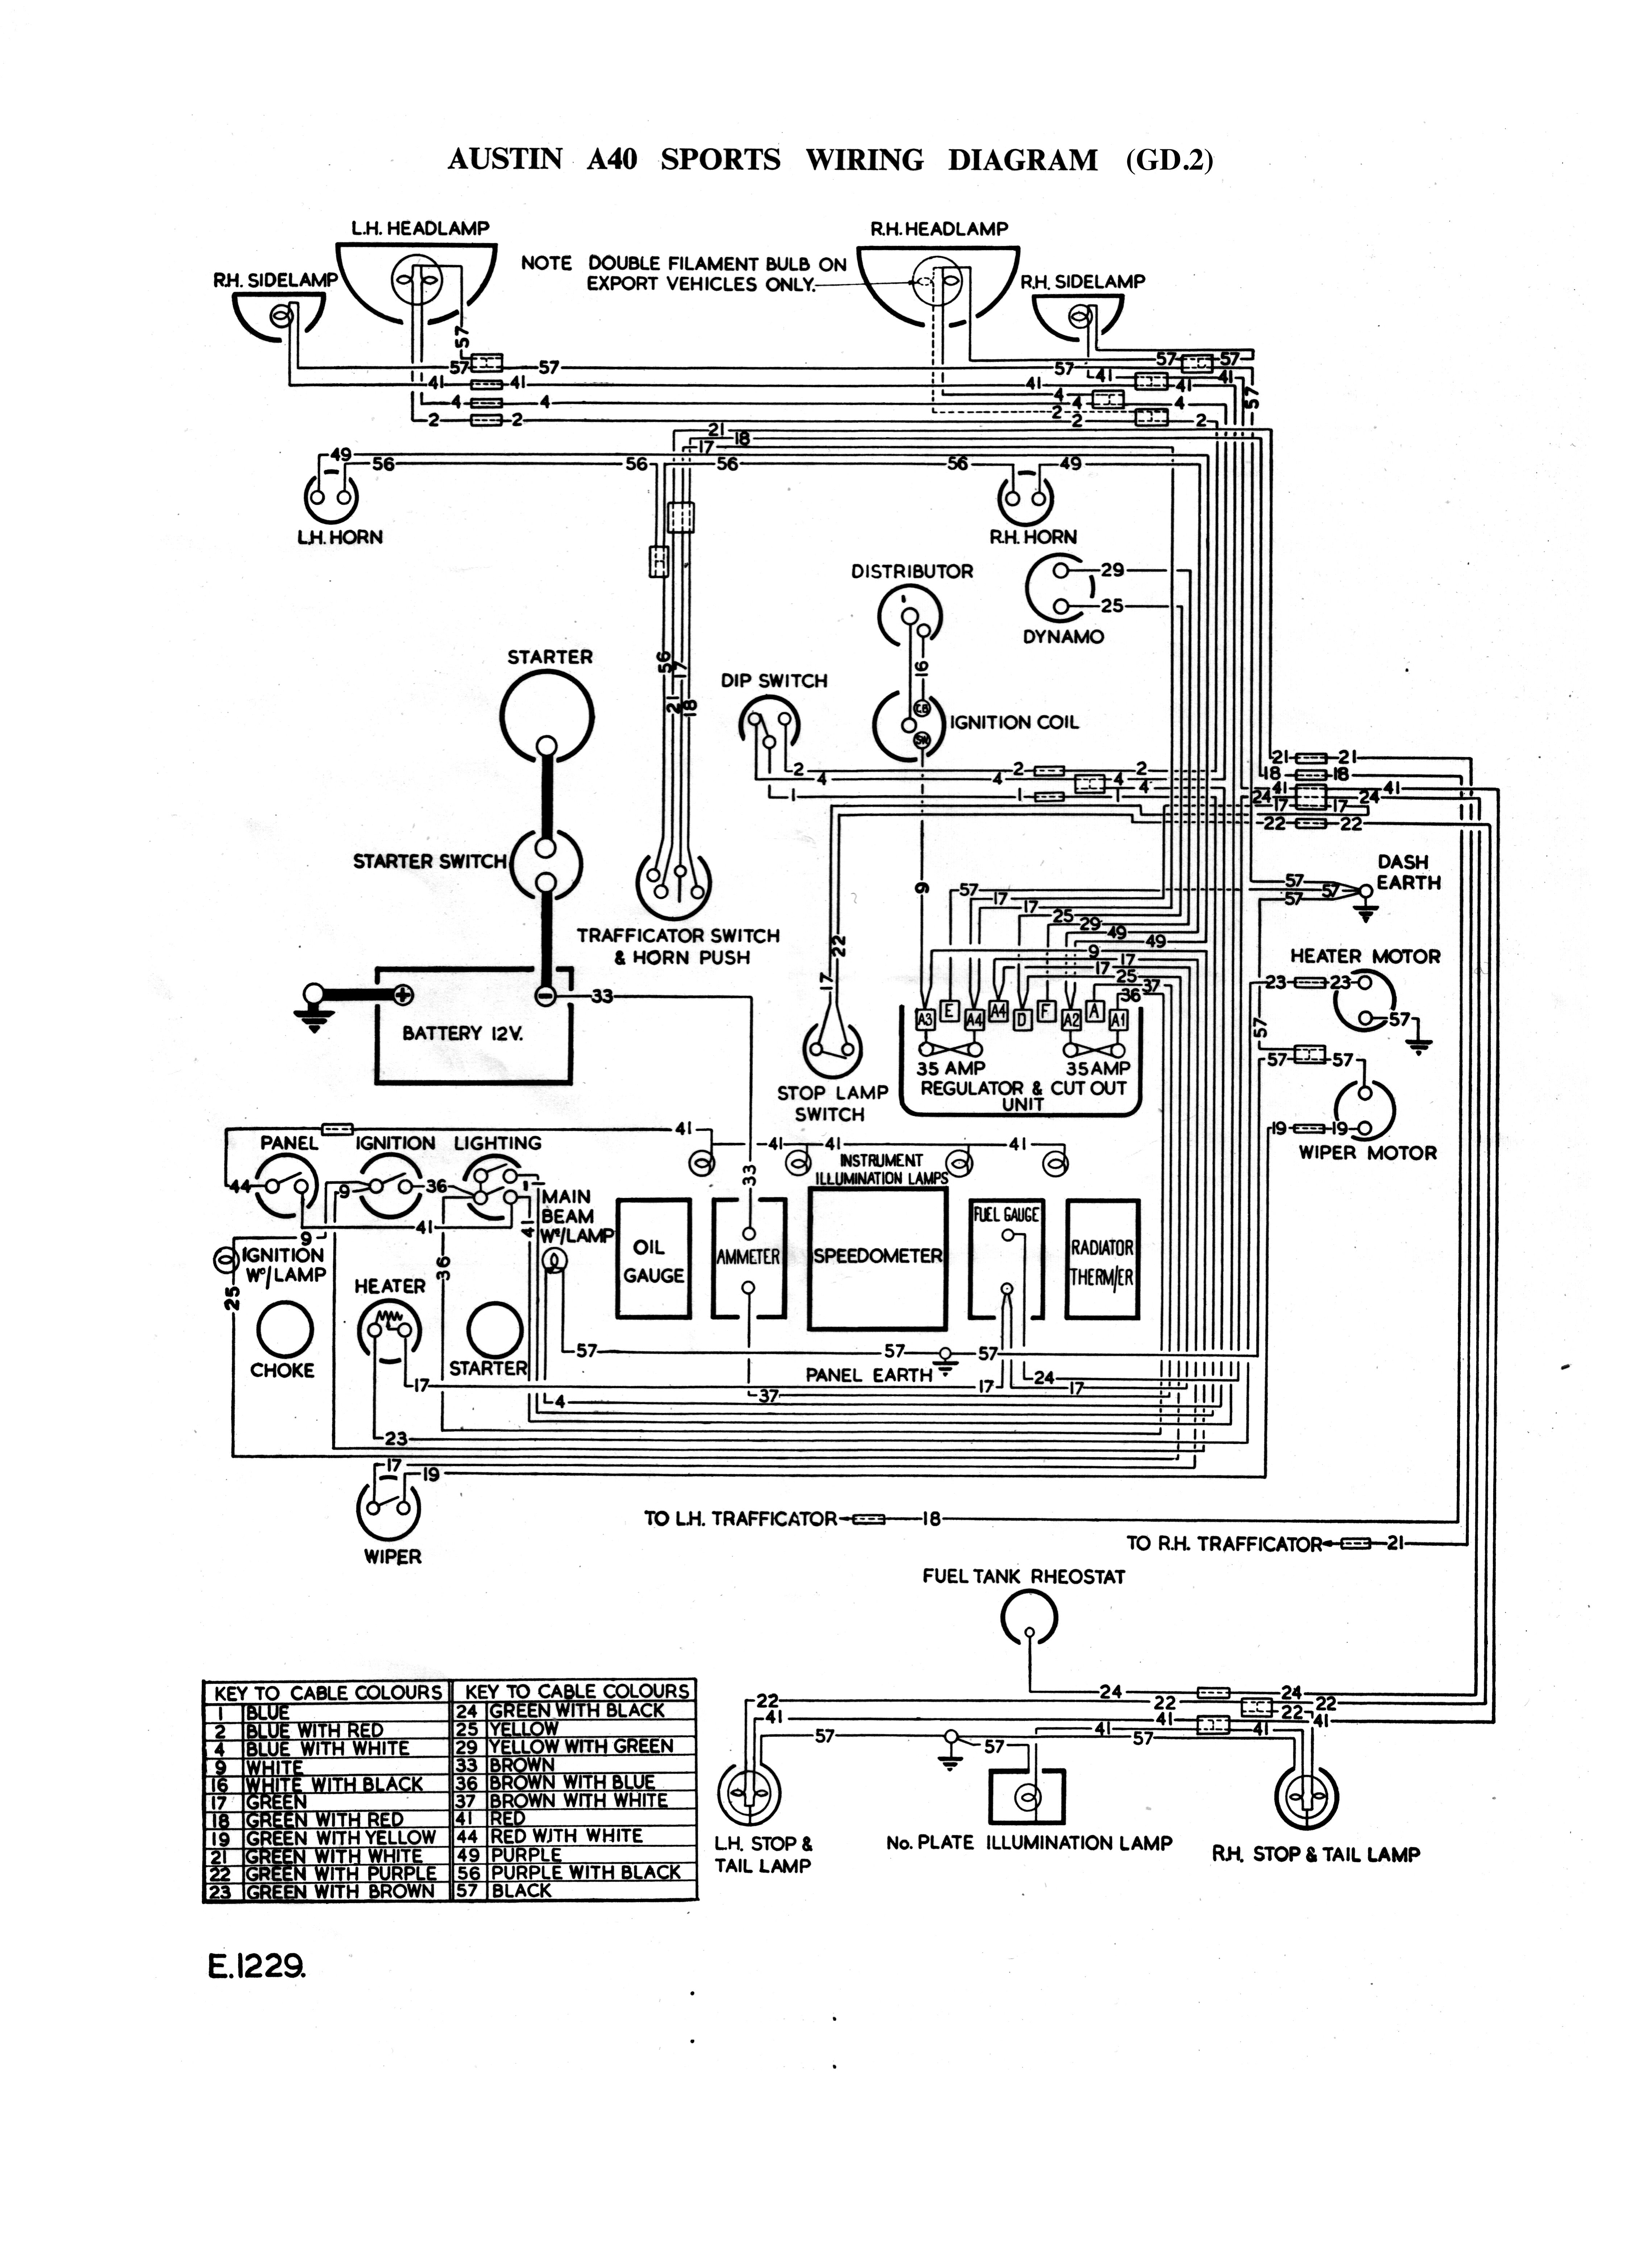 hight resolution of austin a40 sports gd2 wiring diagram